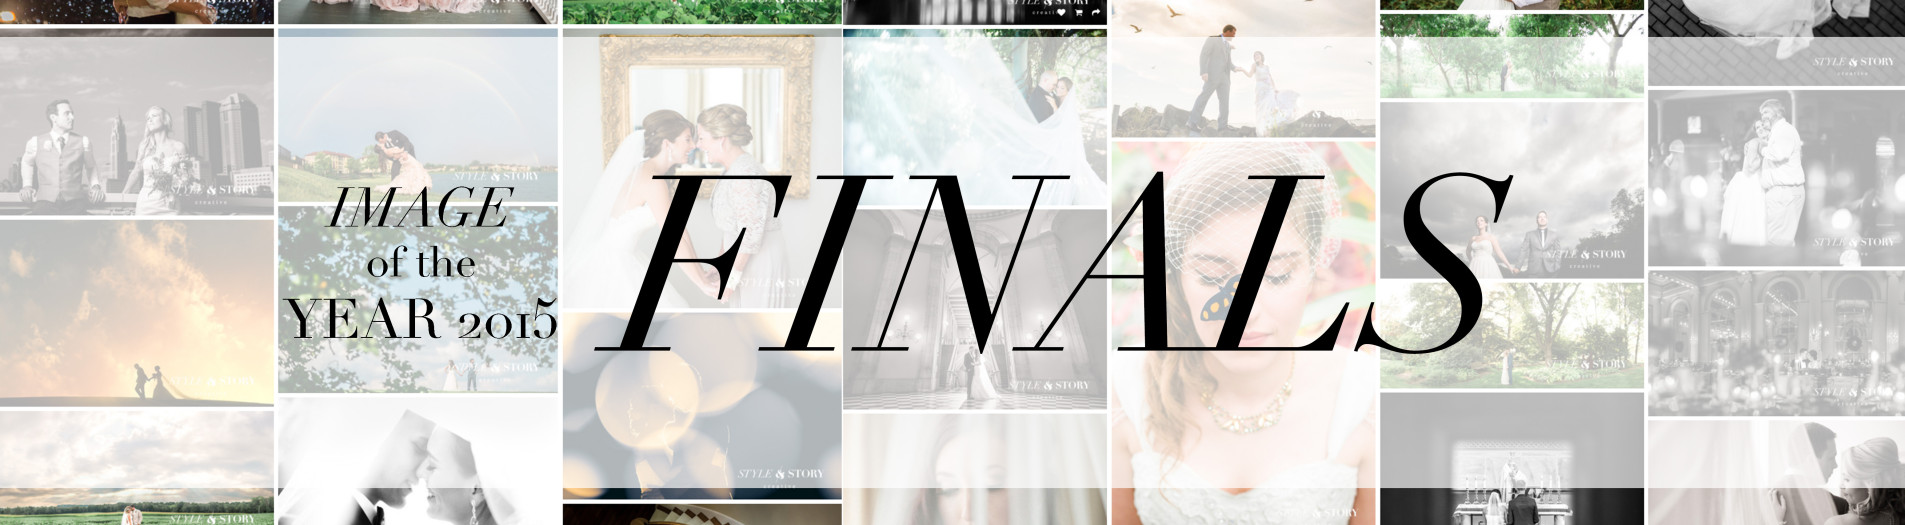 Style & Story Creative, Image of the Year 2015: Finals